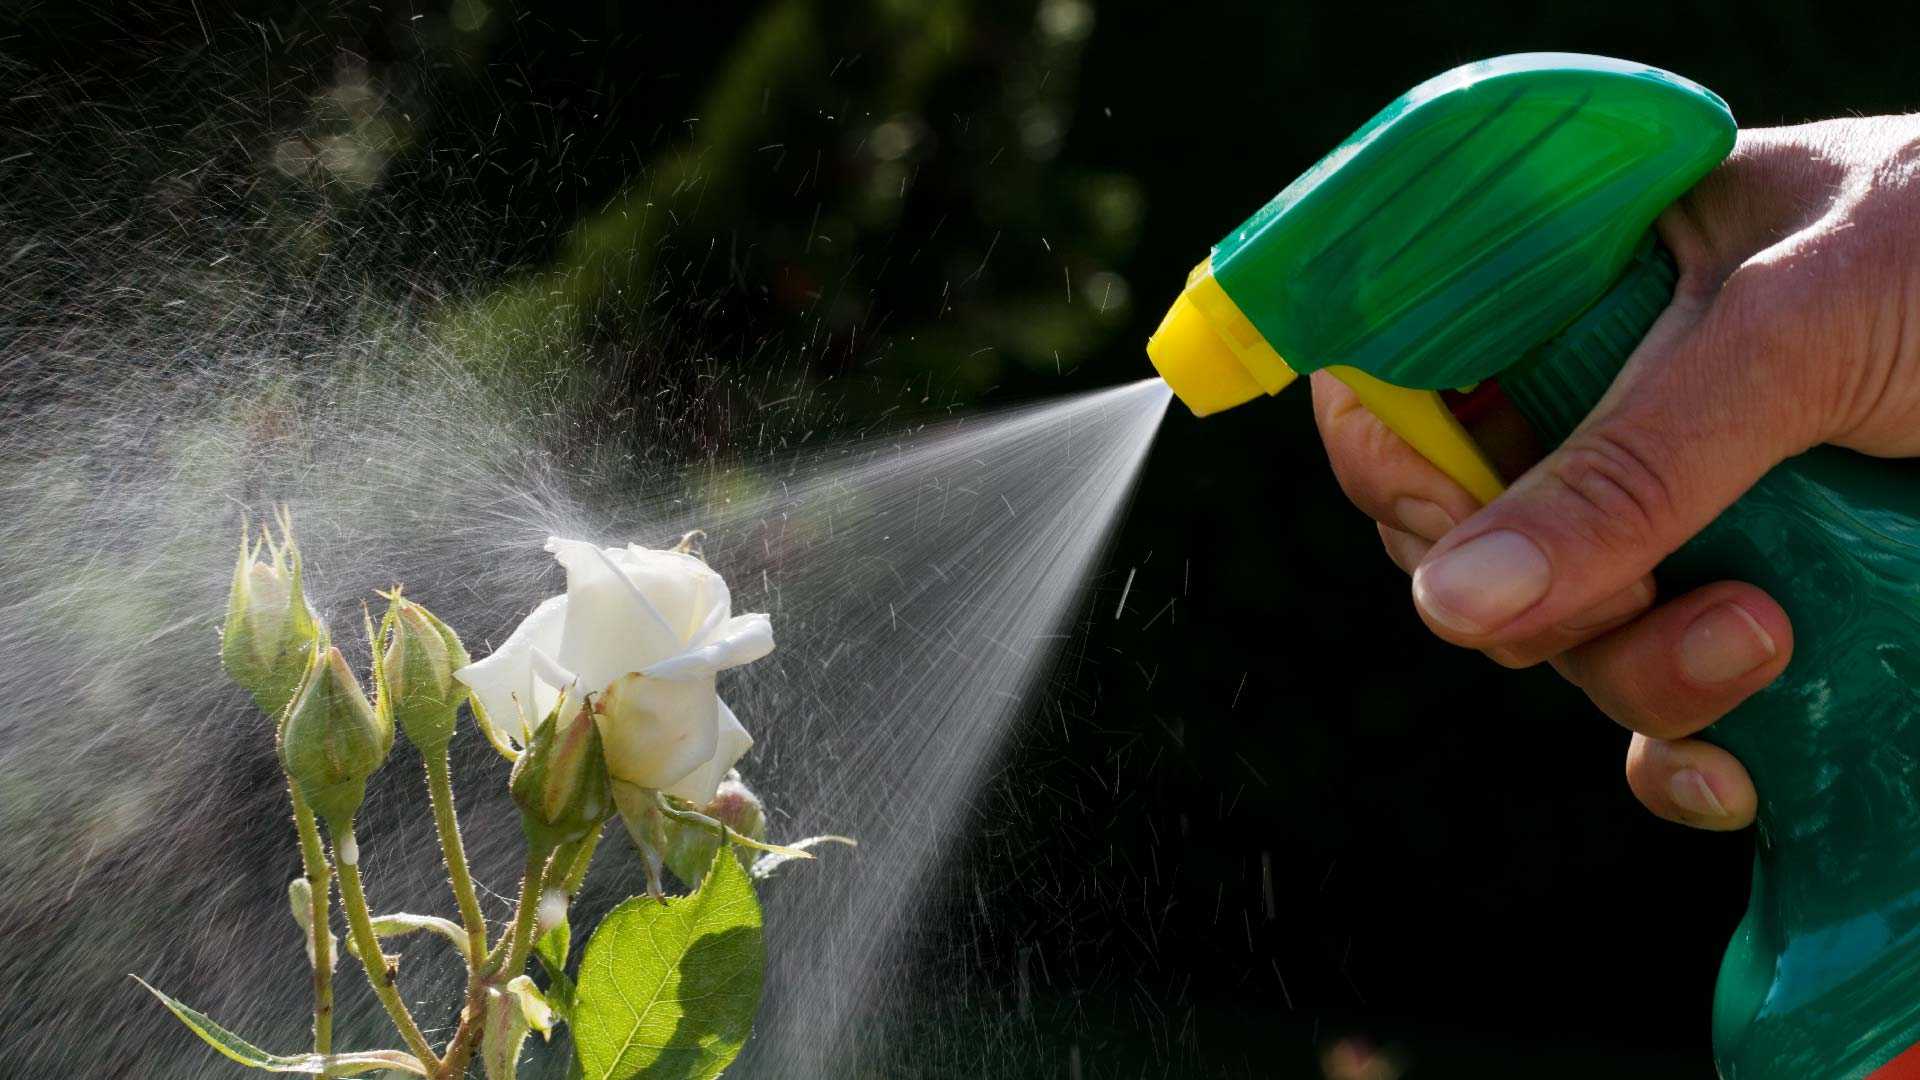 Lawn Safety | Beware of These Potentially Harmful Chemicals 2